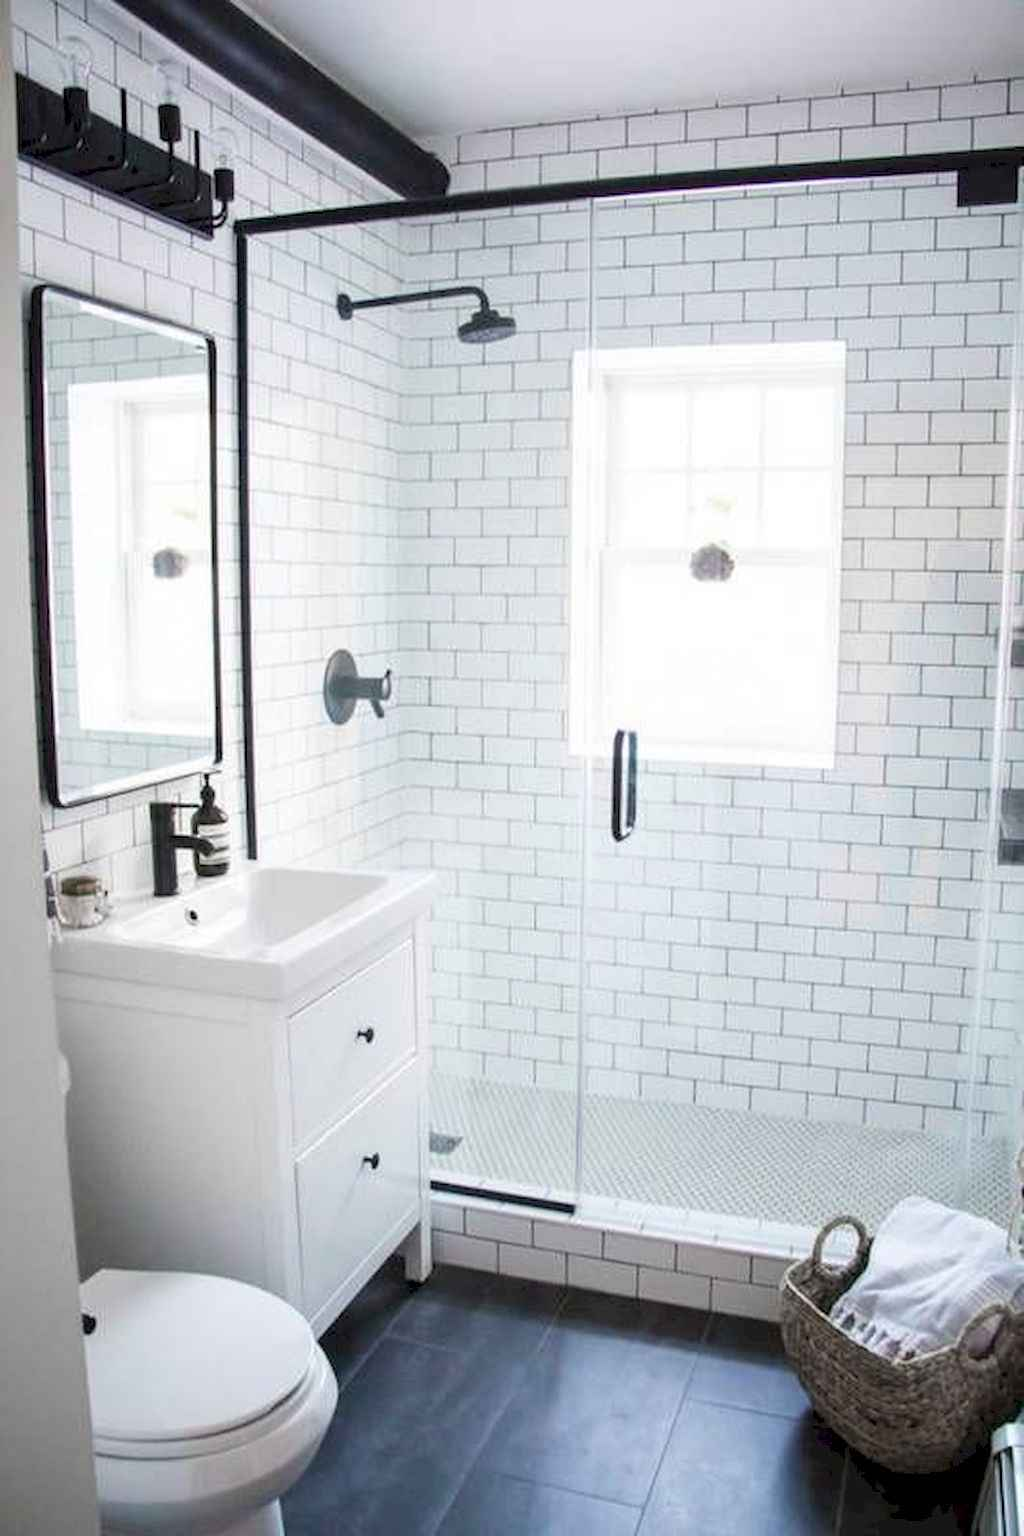 111 awesome small bathroom remodel ideas on a budget (99)